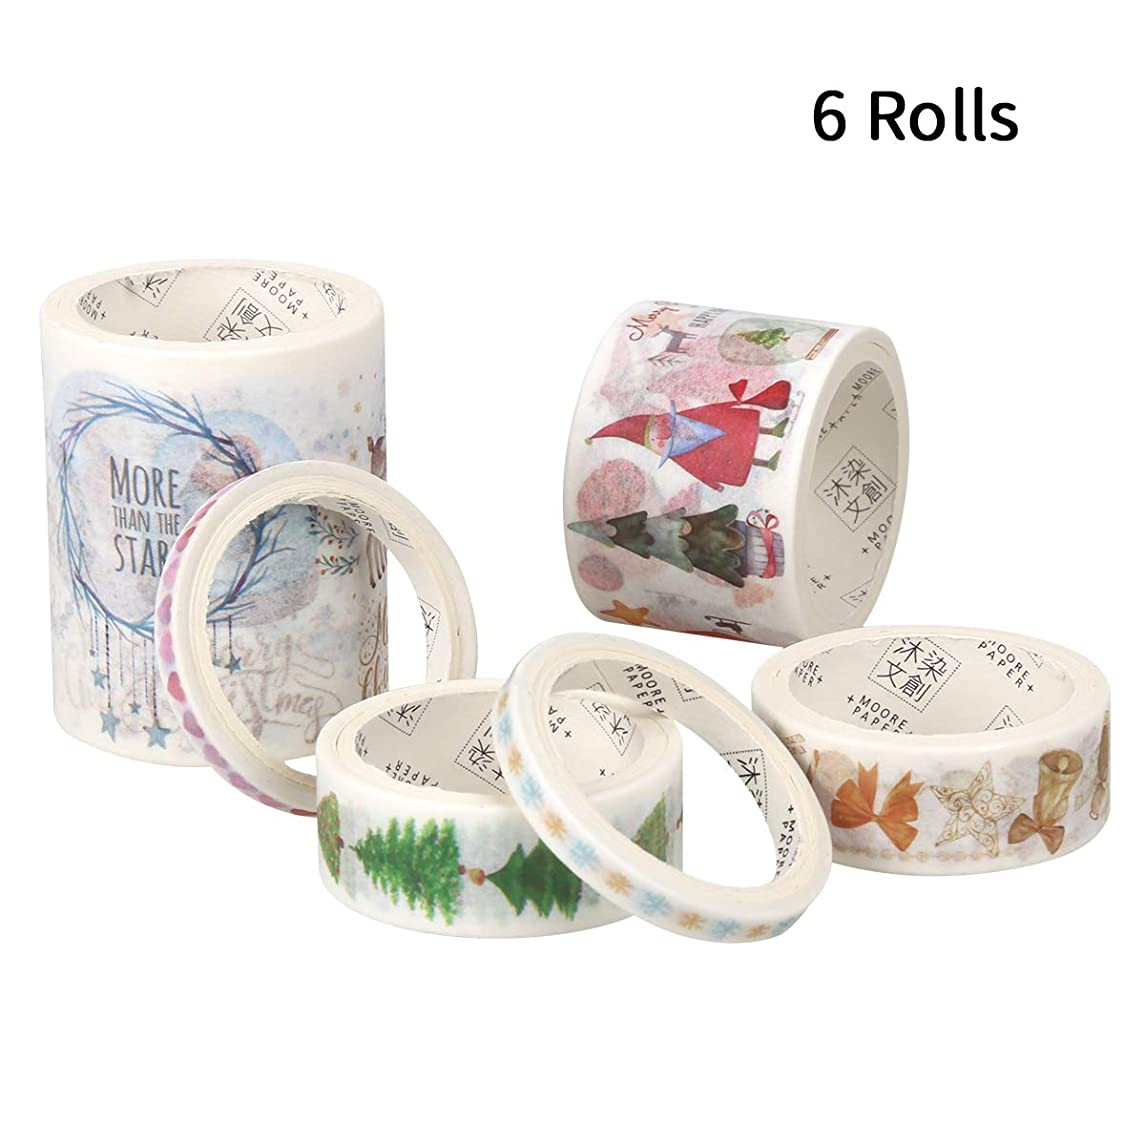 Christmas Washi Tape Set of 6 Rolls, Cute Masking Tape Xmas Holiday Decorations for Scrapbooking Art Crafts & Gifts Wrapping